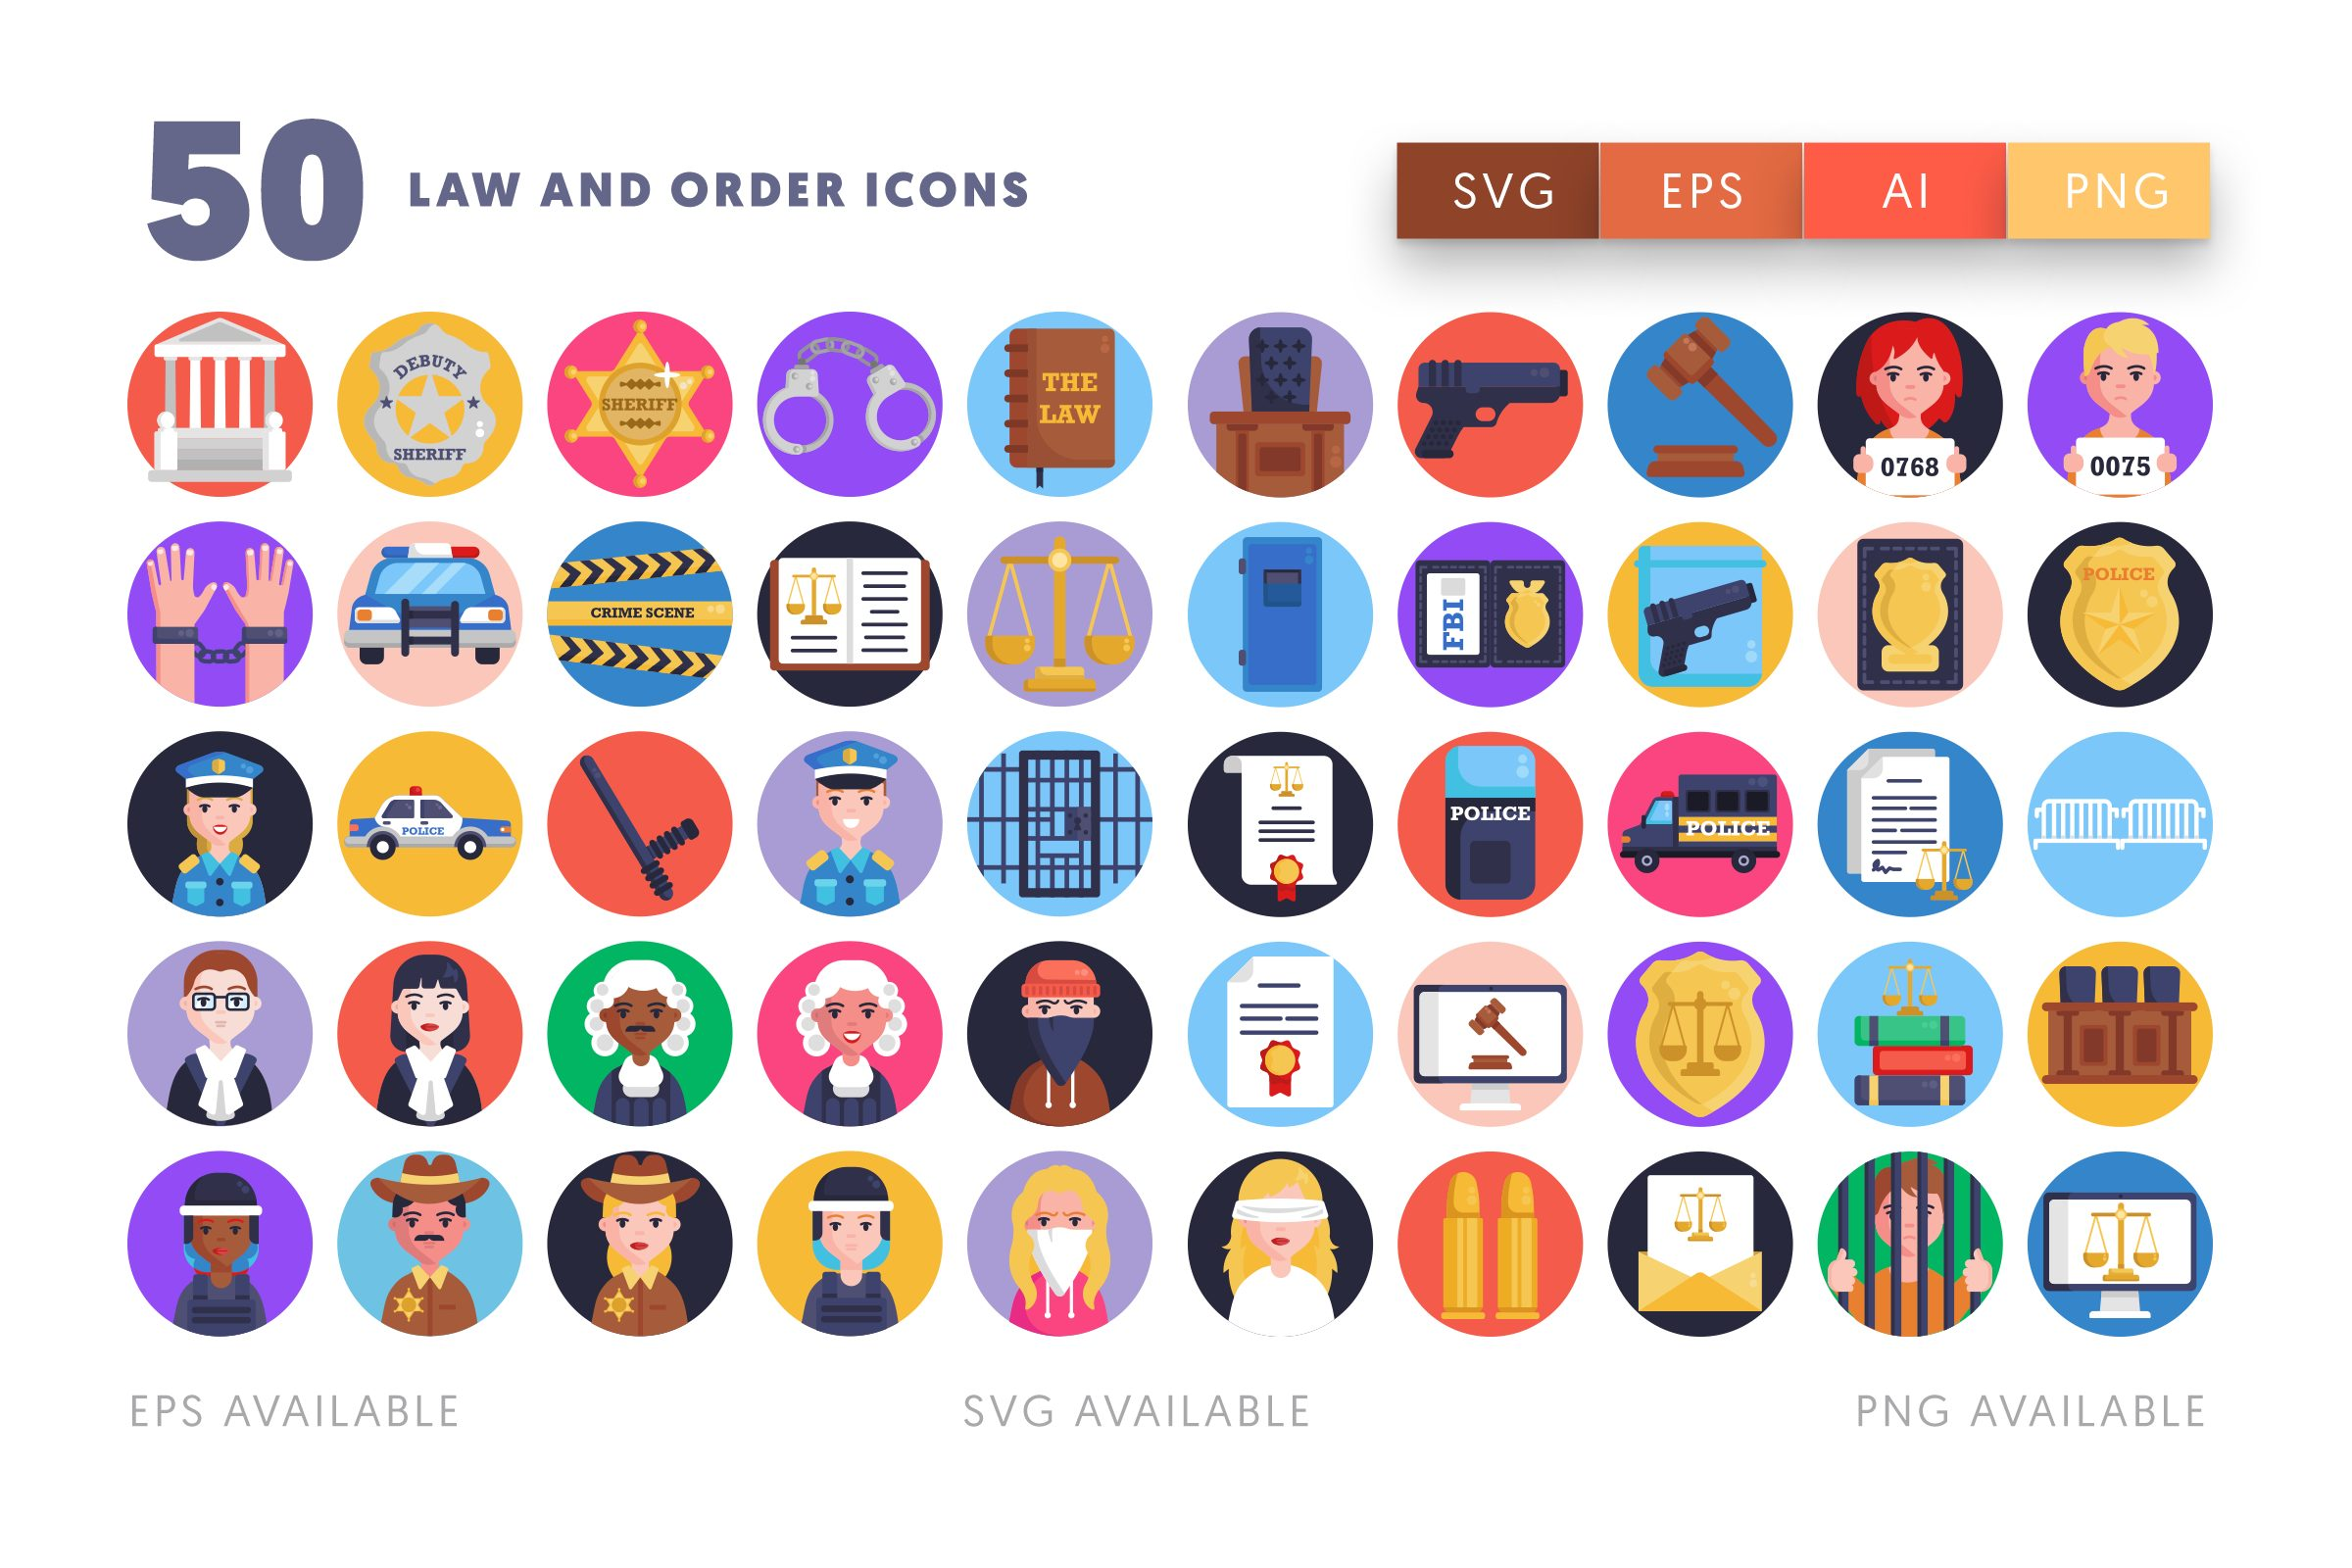 Law and Order icons png/svg/eps